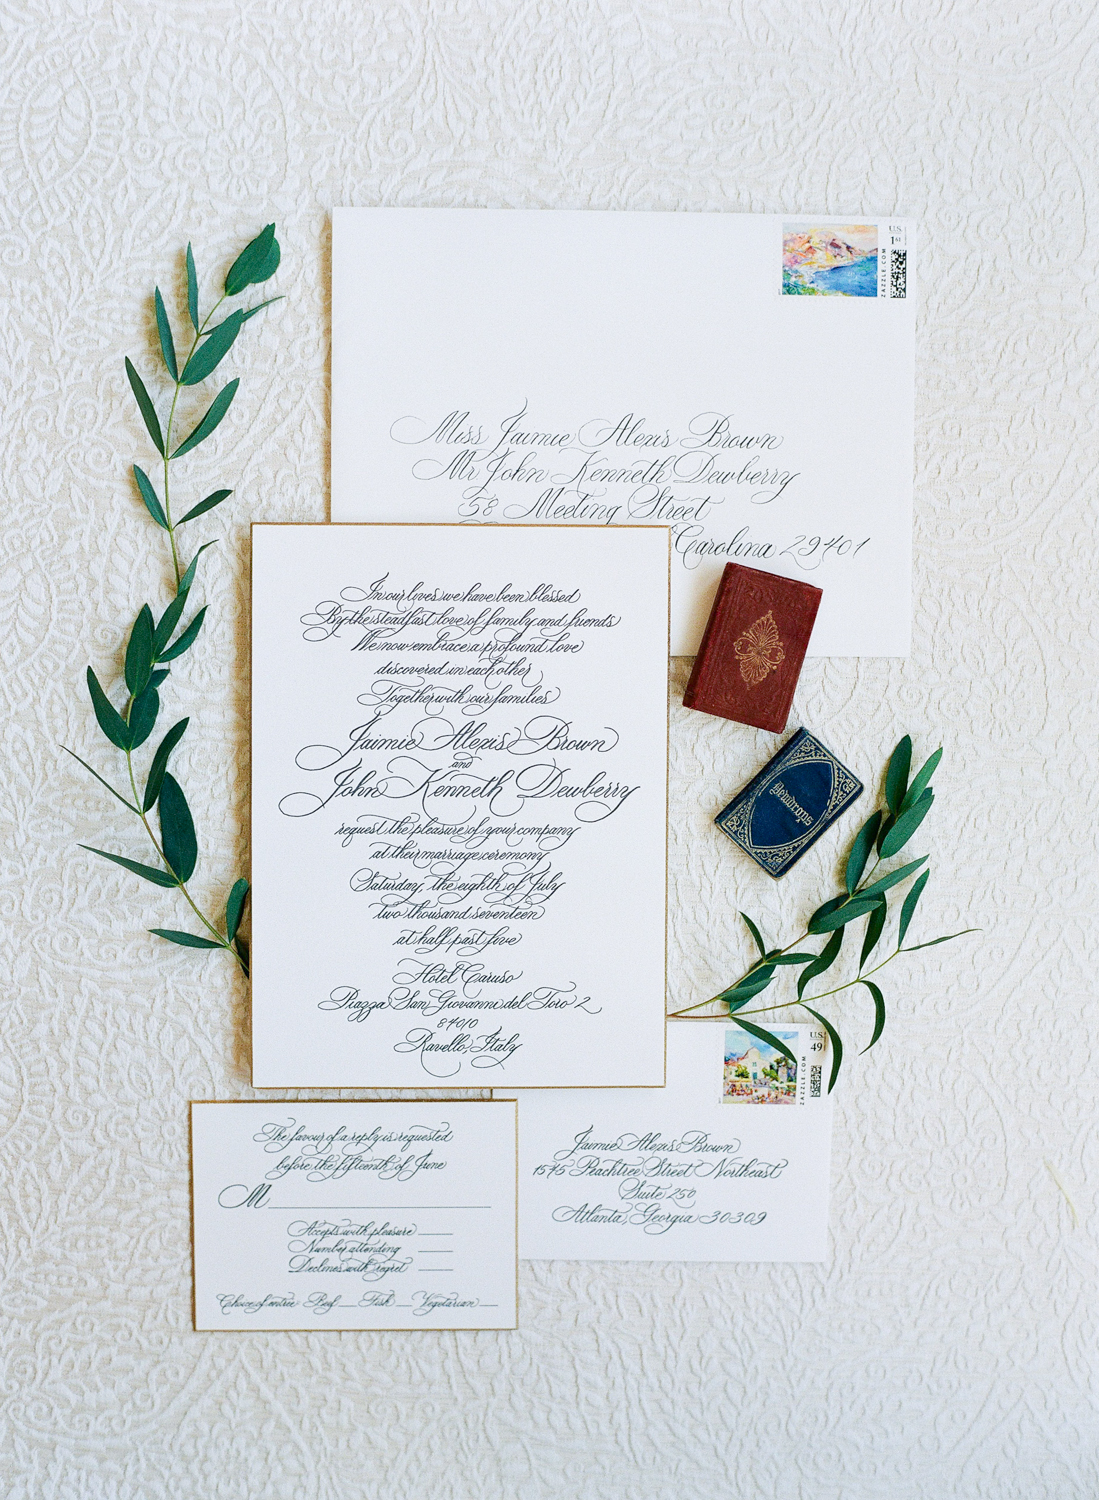 A layflat of the invitation, framed with olive branches; Sylvie Gil Photography